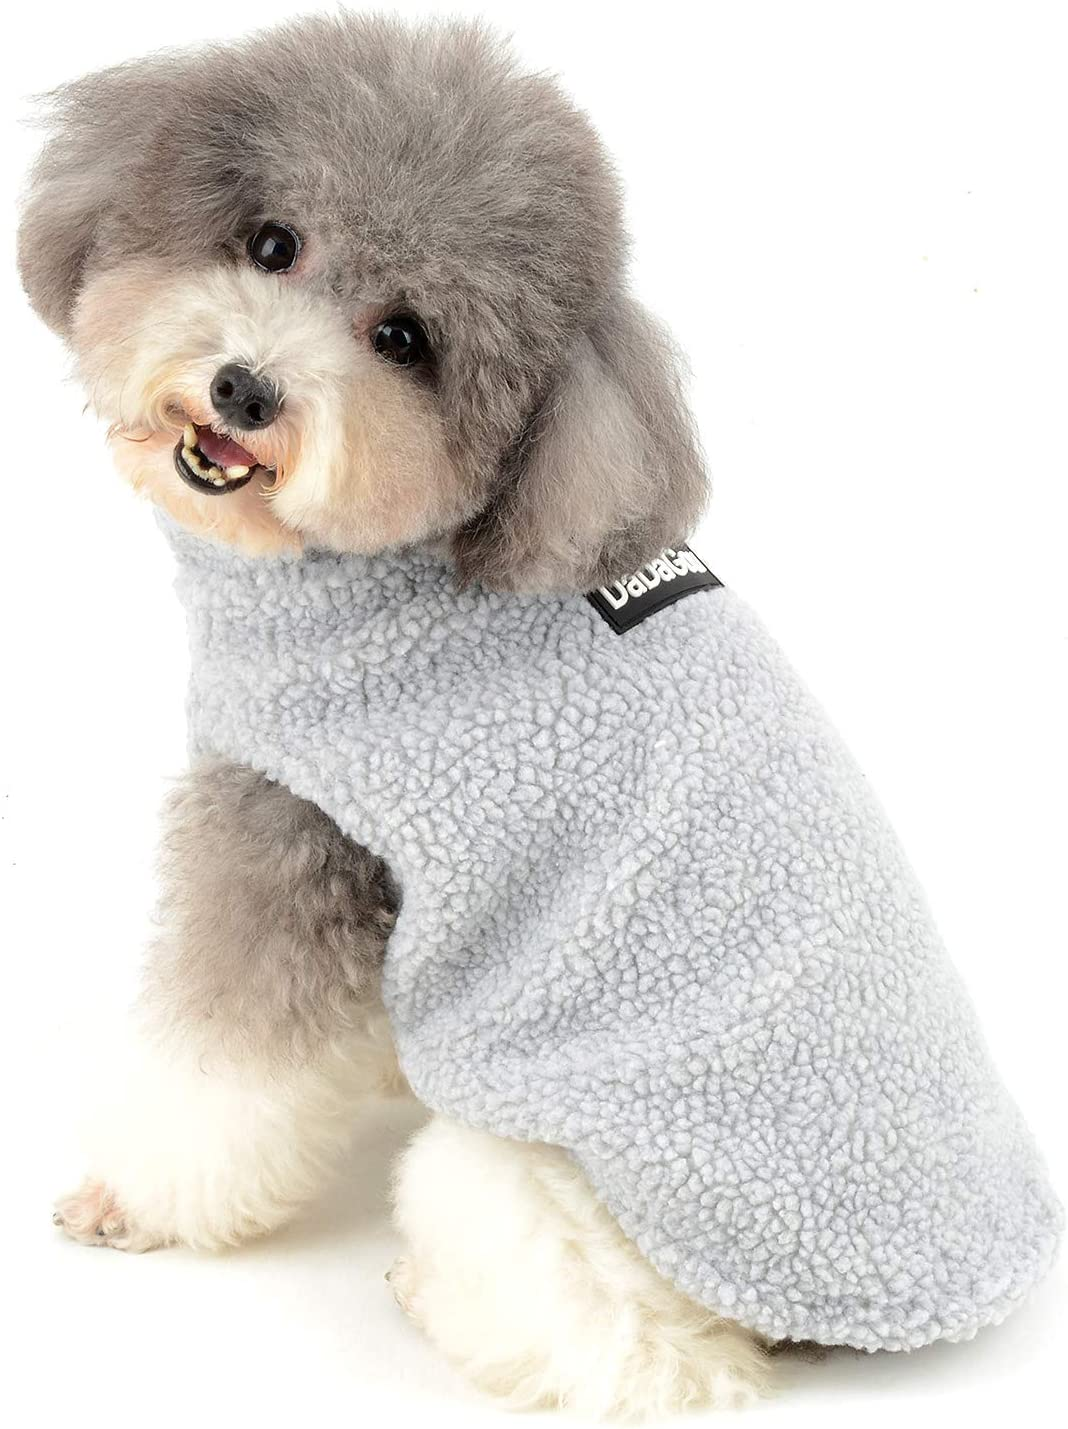 Ranphy Sherpa Fleece Small Dog Clothes for Boys Girls Winter Puppy Cat Coat Soft Vest Outfits Warm Sweater Chihuahua Yorkshire Terrier Parka Costume Apparel Cute Halloween Christmas Clothing Gray S